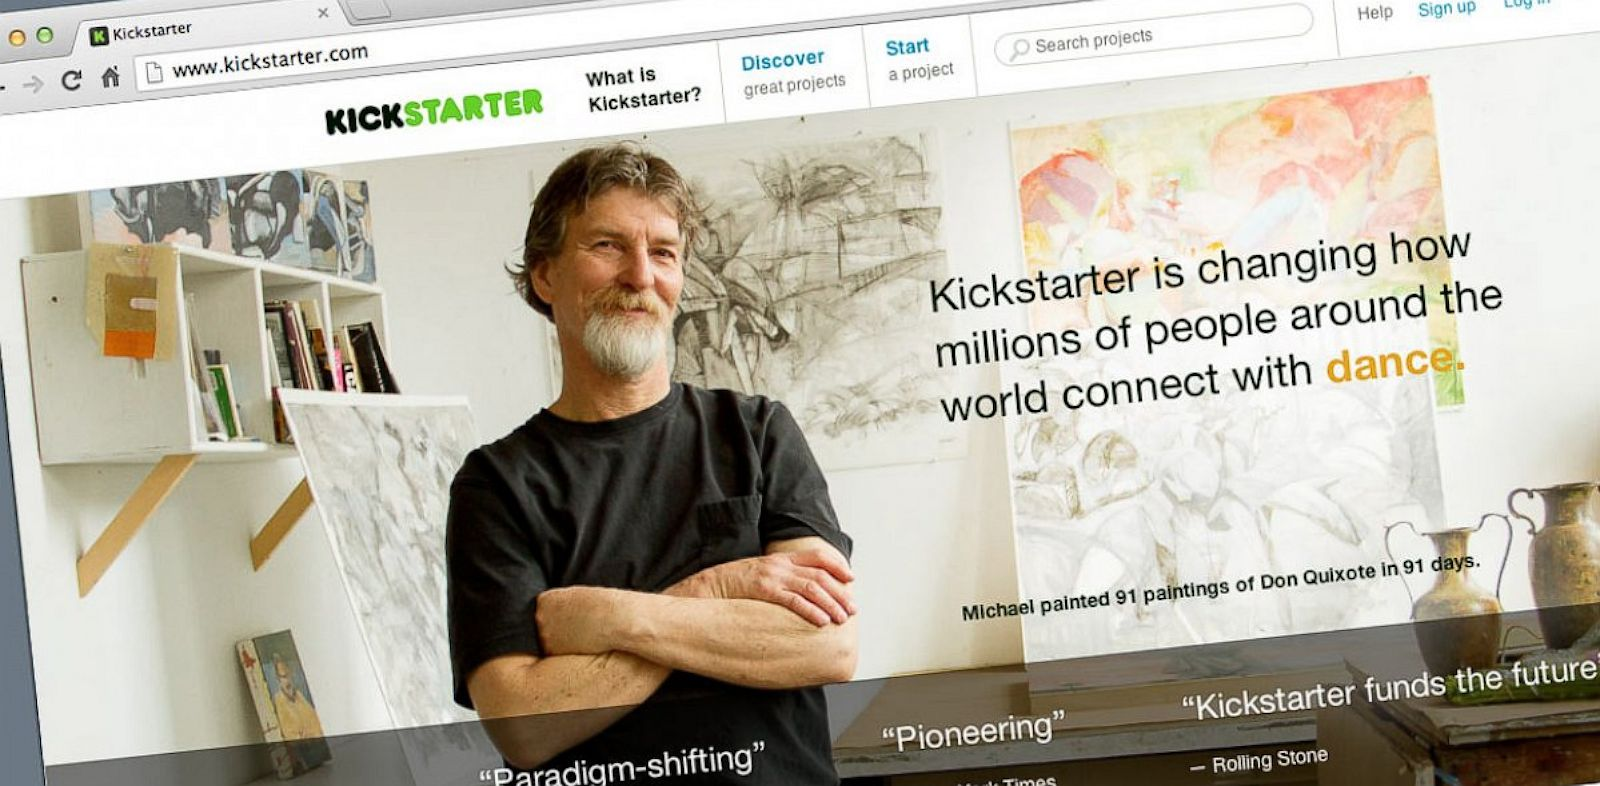 PHOTO: Since 2009, Kickstarter has funded 48,000 creative projects.